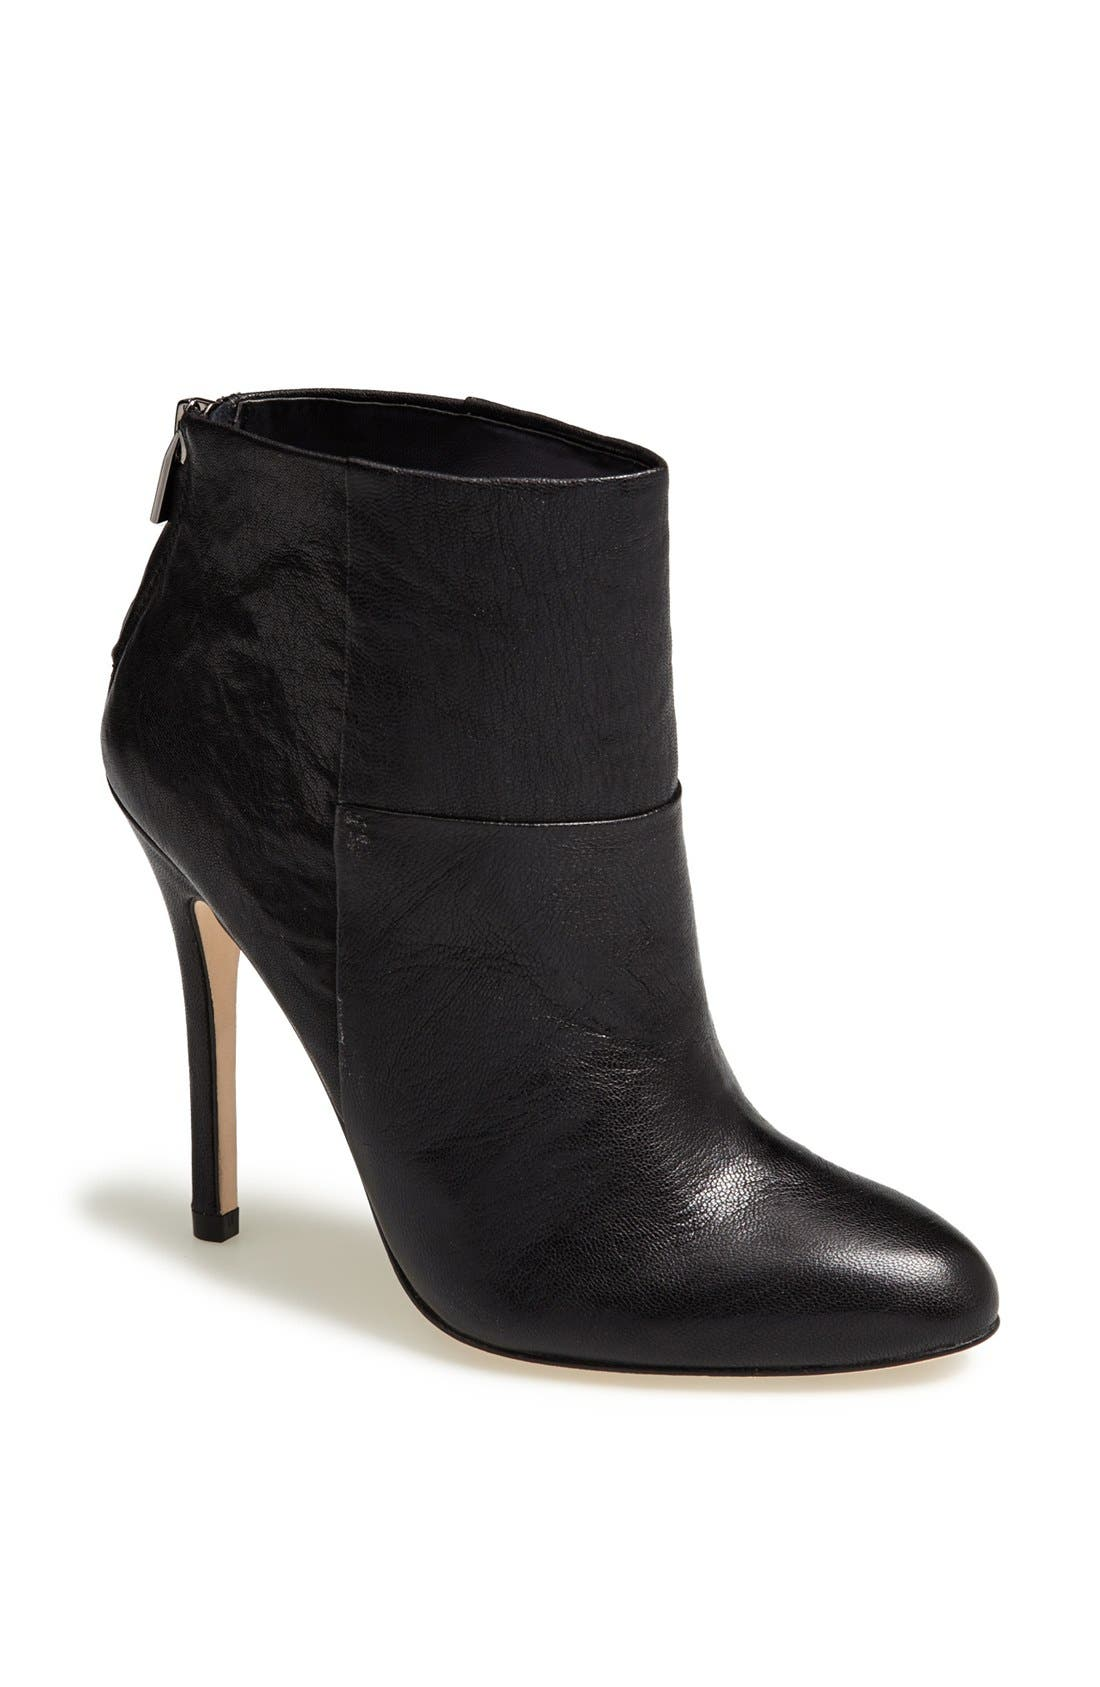 Main Image - Charles David 'Zen' Ankle Bootie